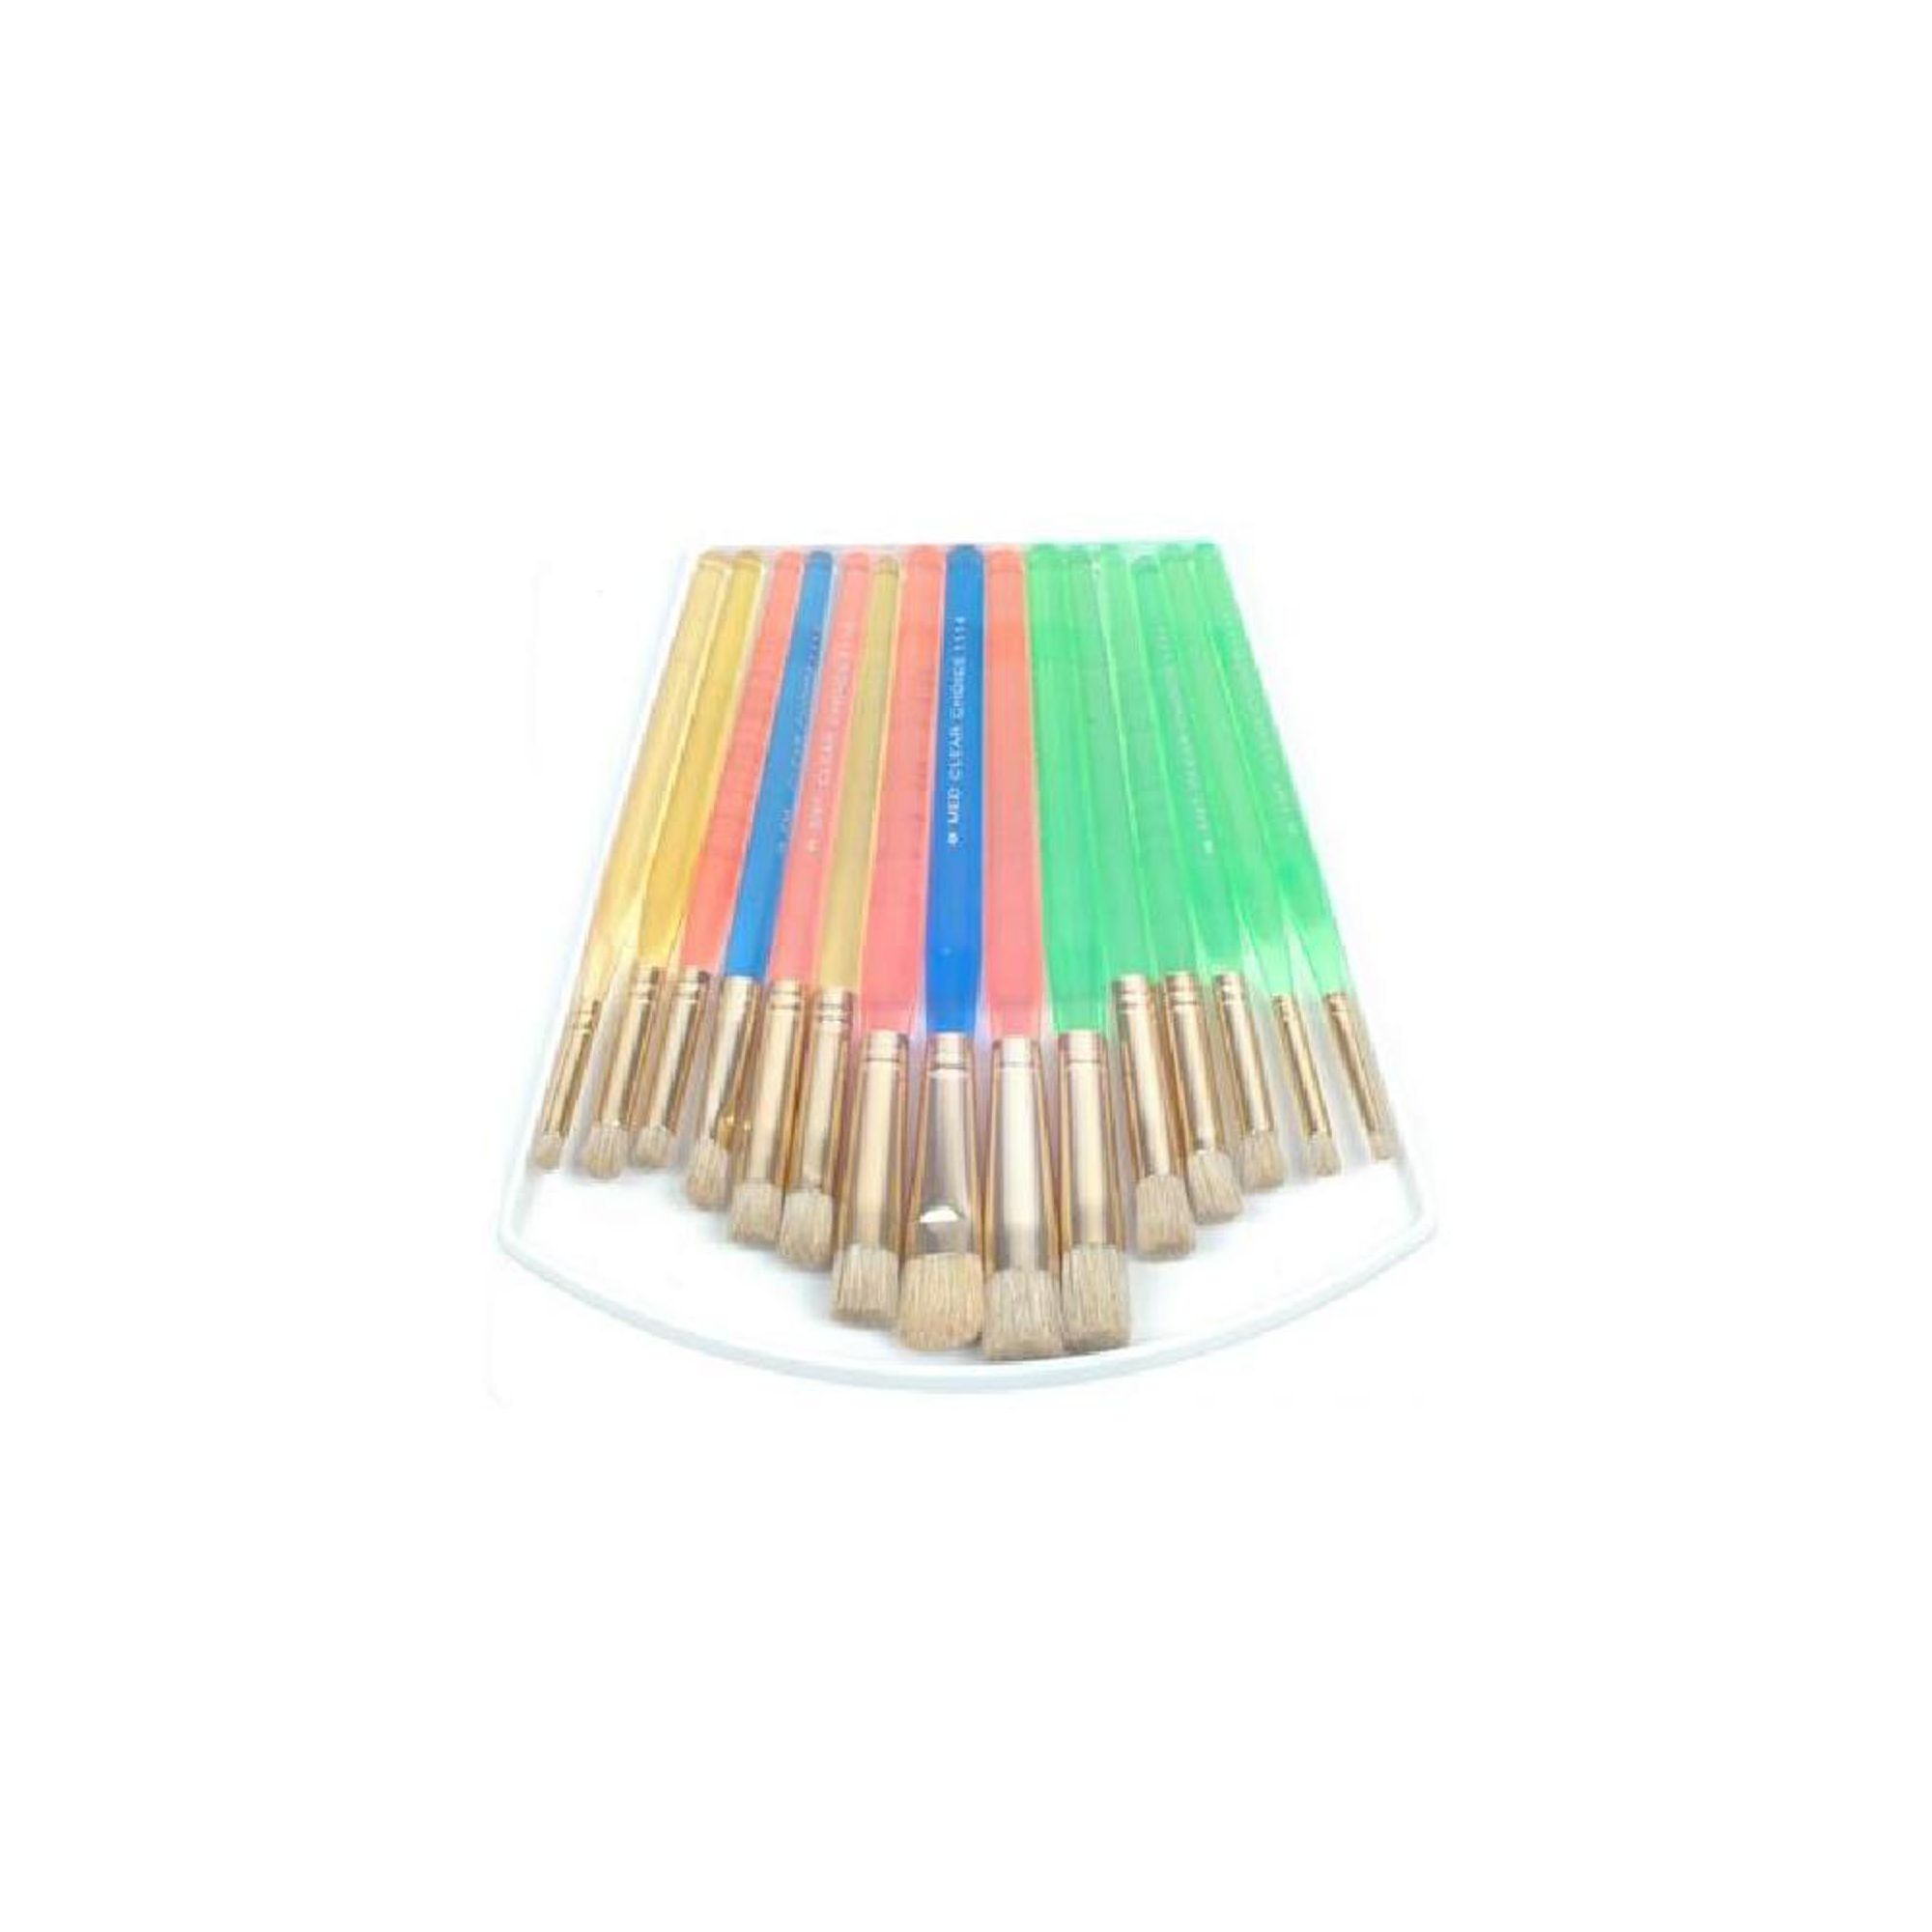 Royal Stencil Brush 15 Pk